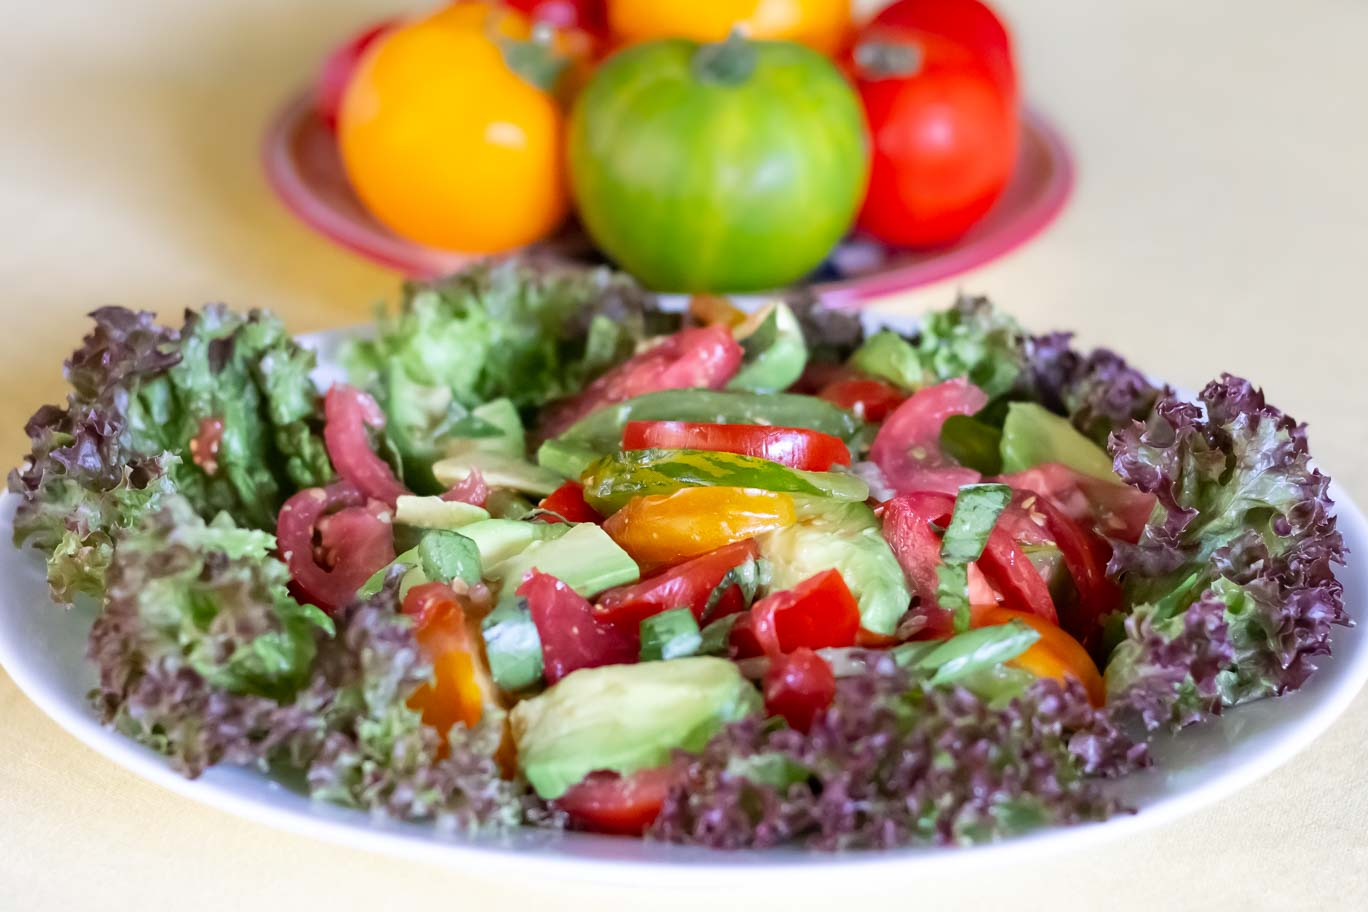 Summer Tomatoes & Avocado Salad on bed of red leaf lettuce with whole tomatoes behind.